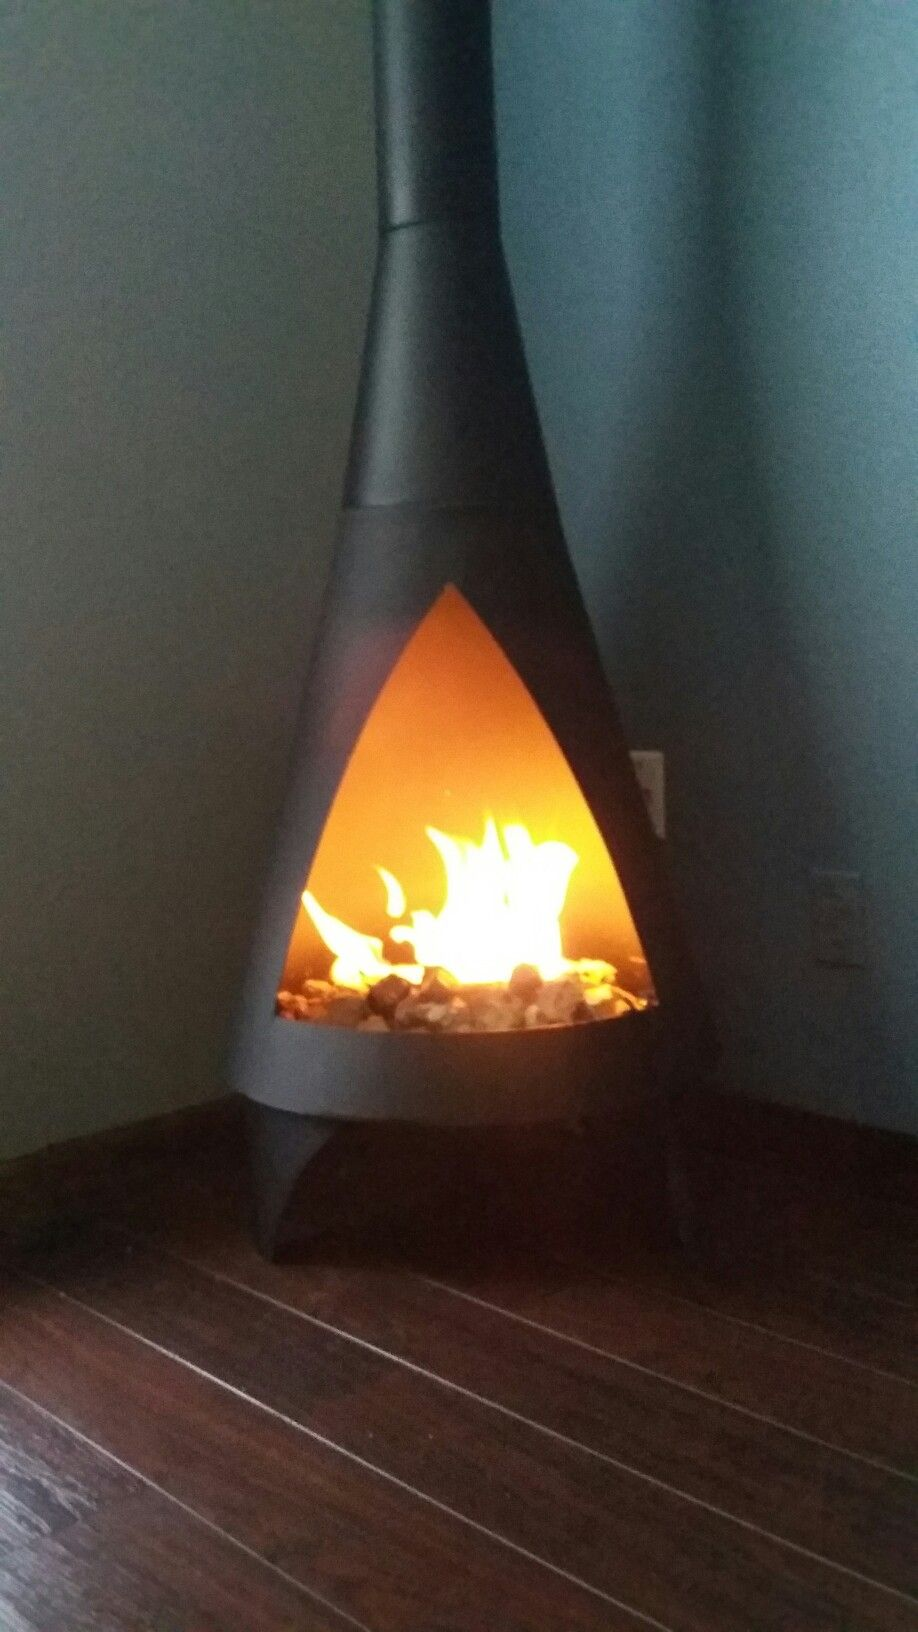 Chiminea Repurposed As An Indoor Fireplace Still Need A Cap On The Top To Keep Ceiling From Catching Fire